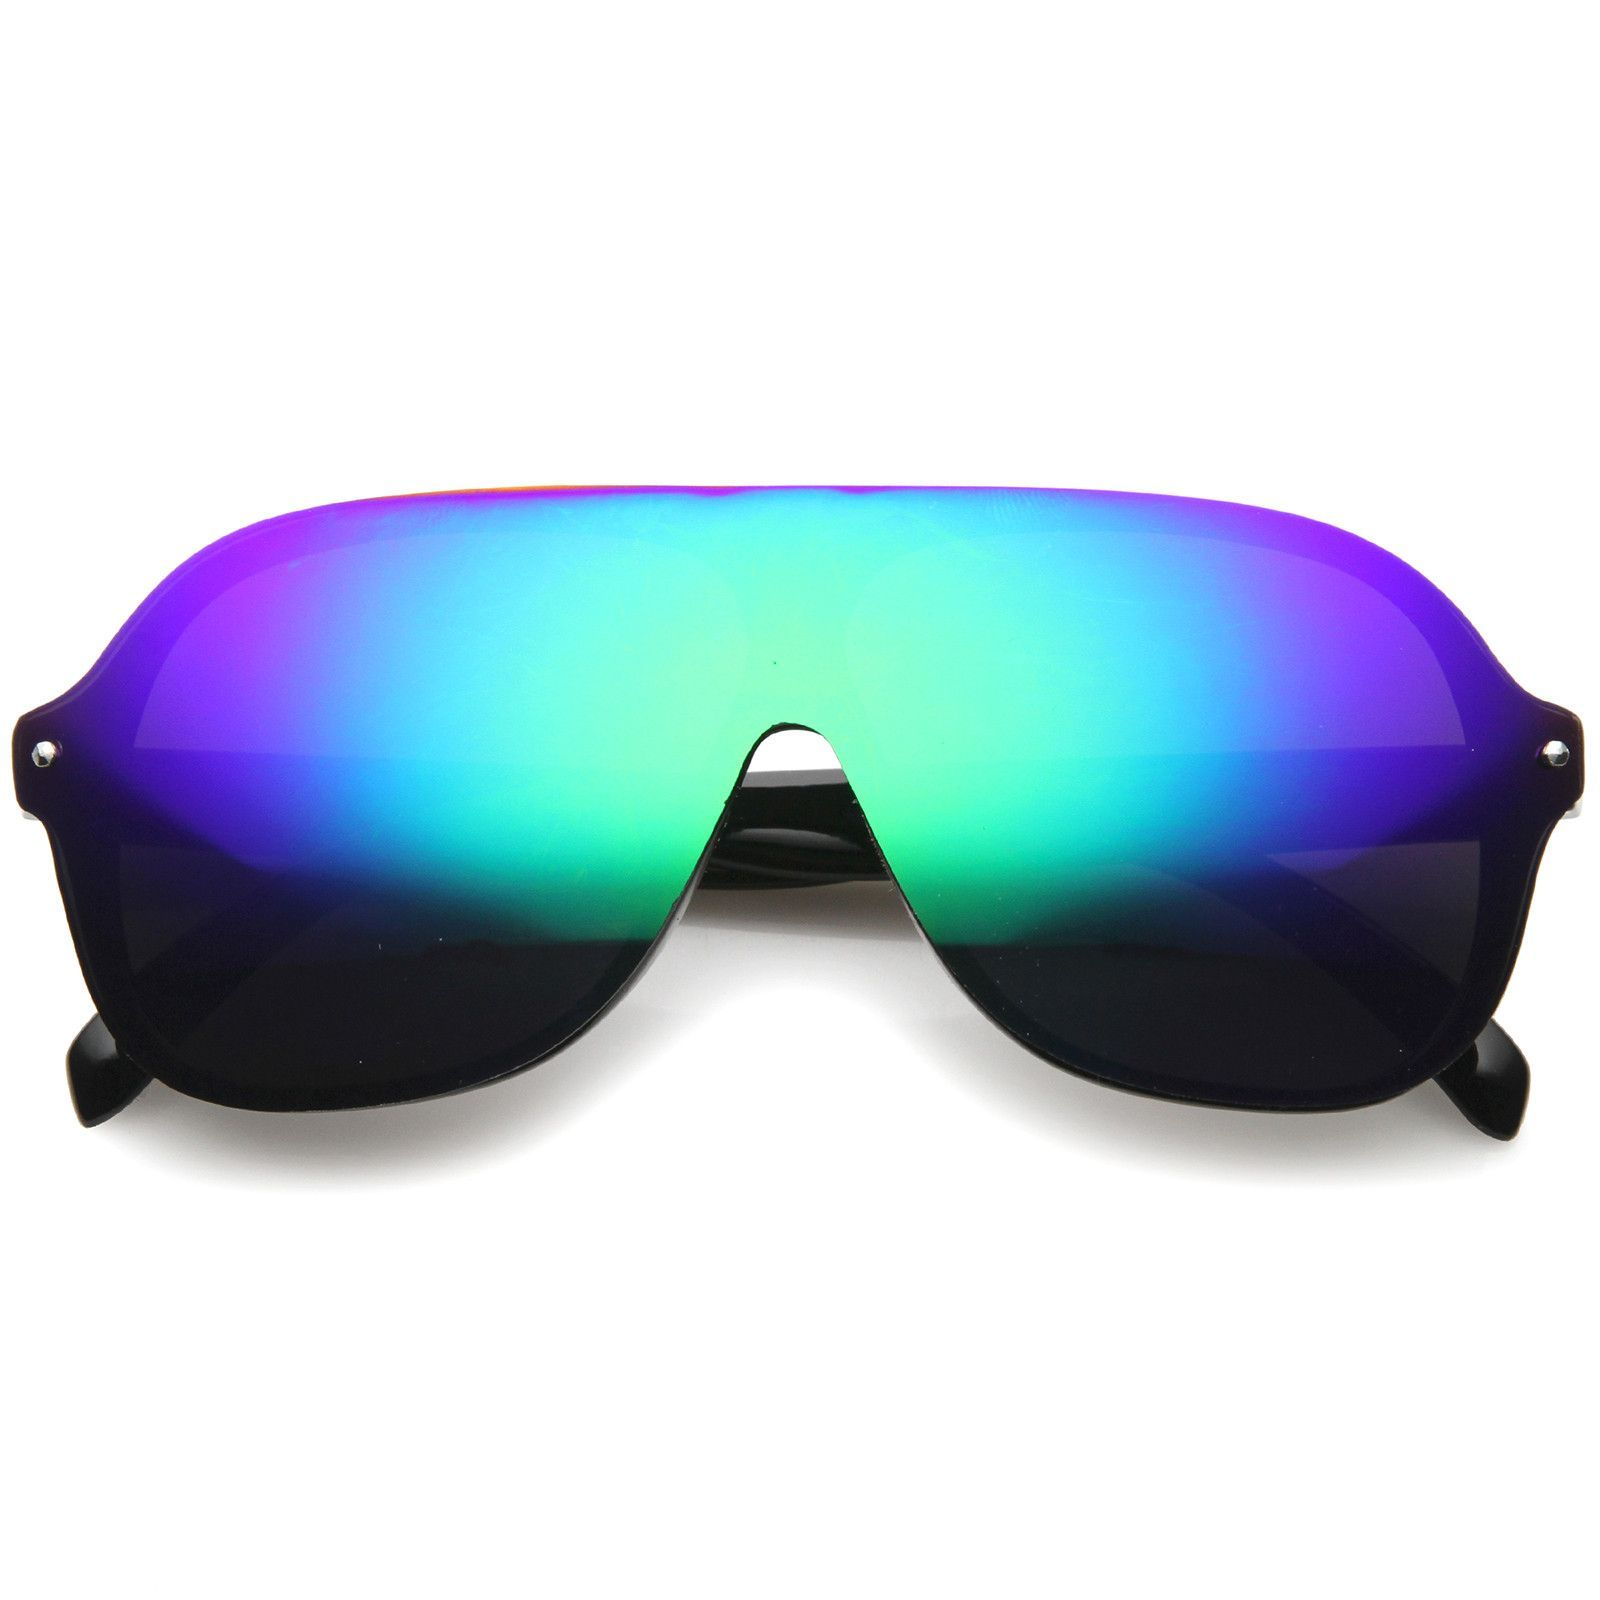 8f4bb1bf942 Mens Rimless Sunglasses With UV400 Protected Mirrored Lens